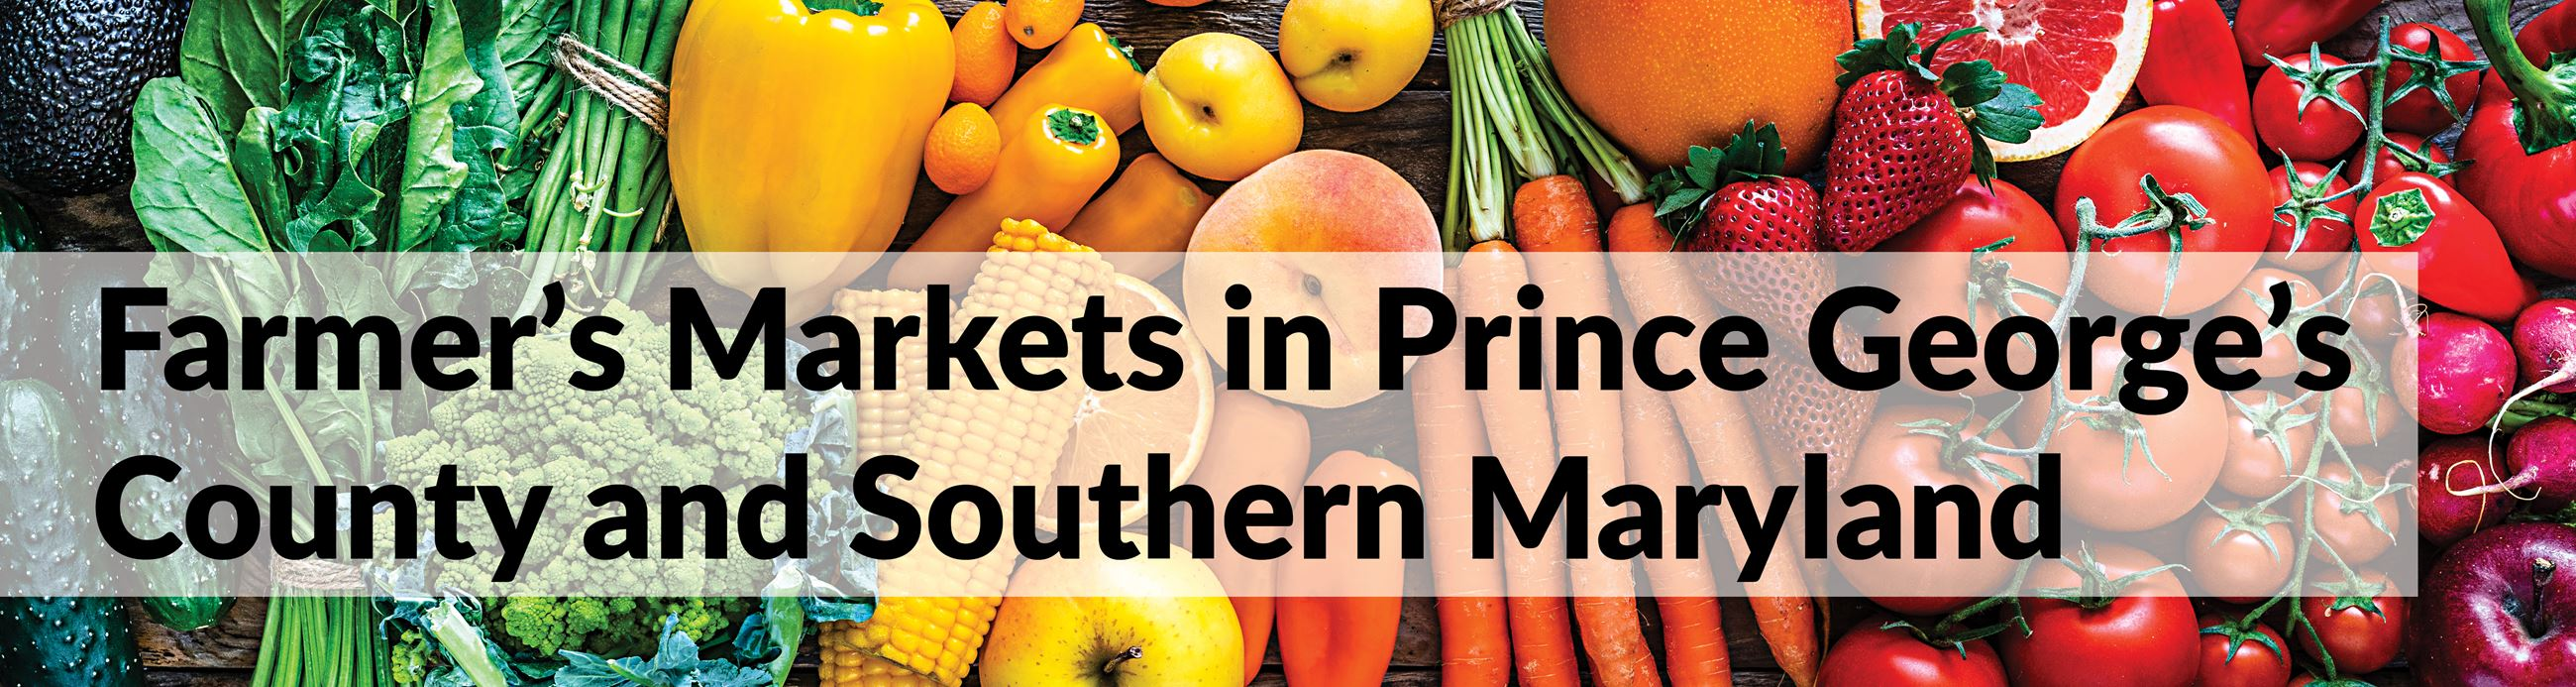 Farmer's Markets in Prince George's County and Southern Maryland